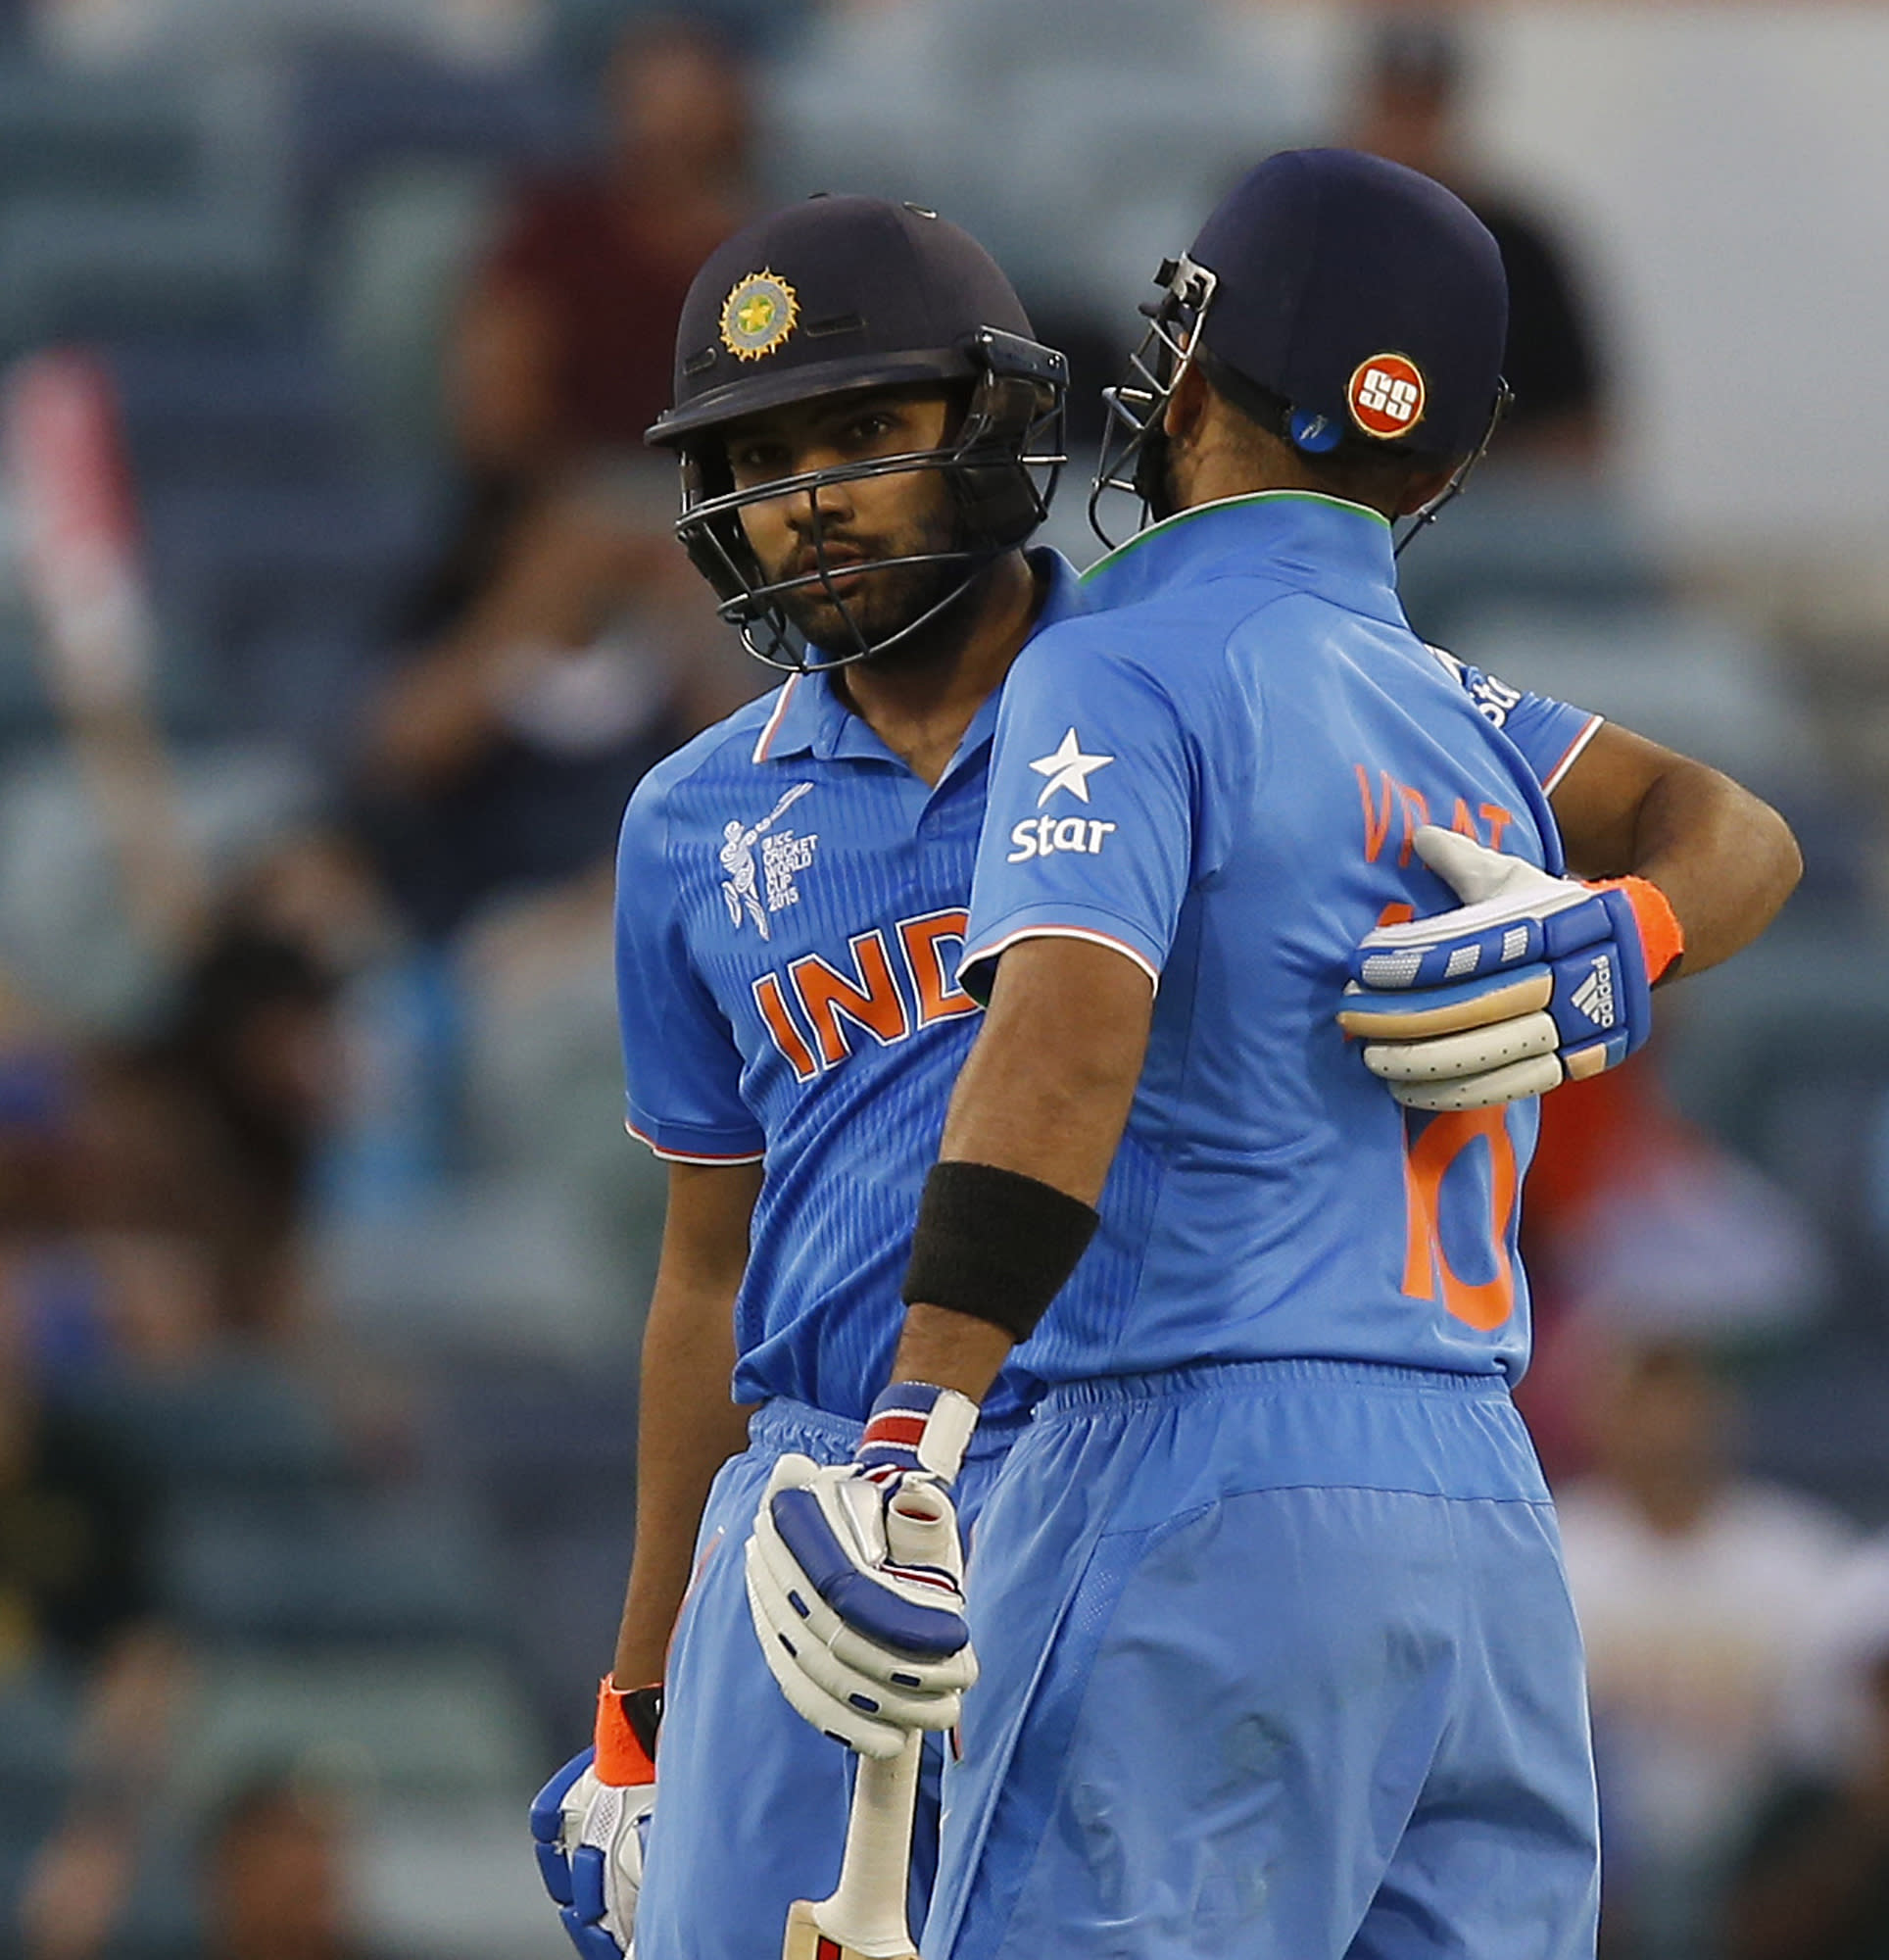 India aims to clinch quarterfinal spot at Cricket World Cup